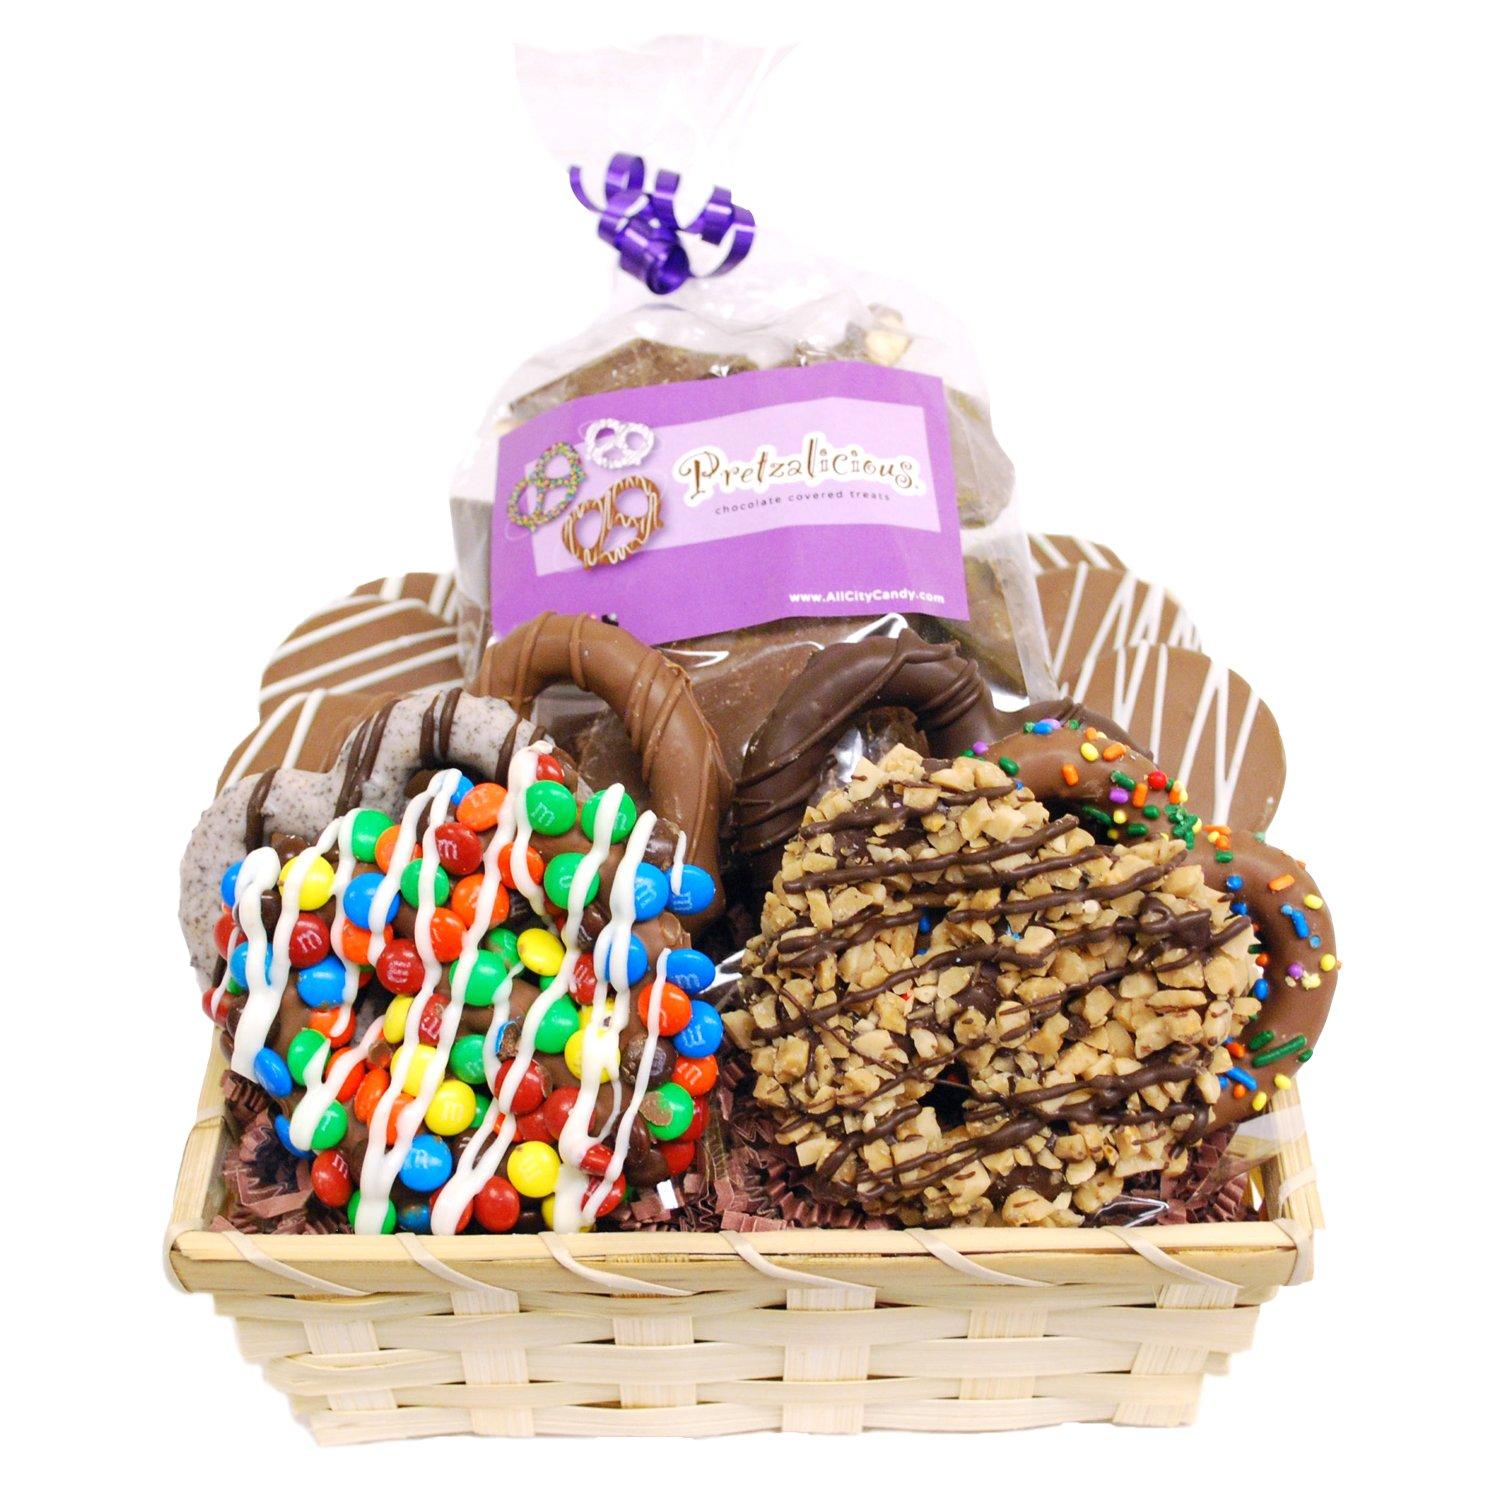 Dreamy Delight Gourmet Chocolate Covered Pretzels and Cookies Basket